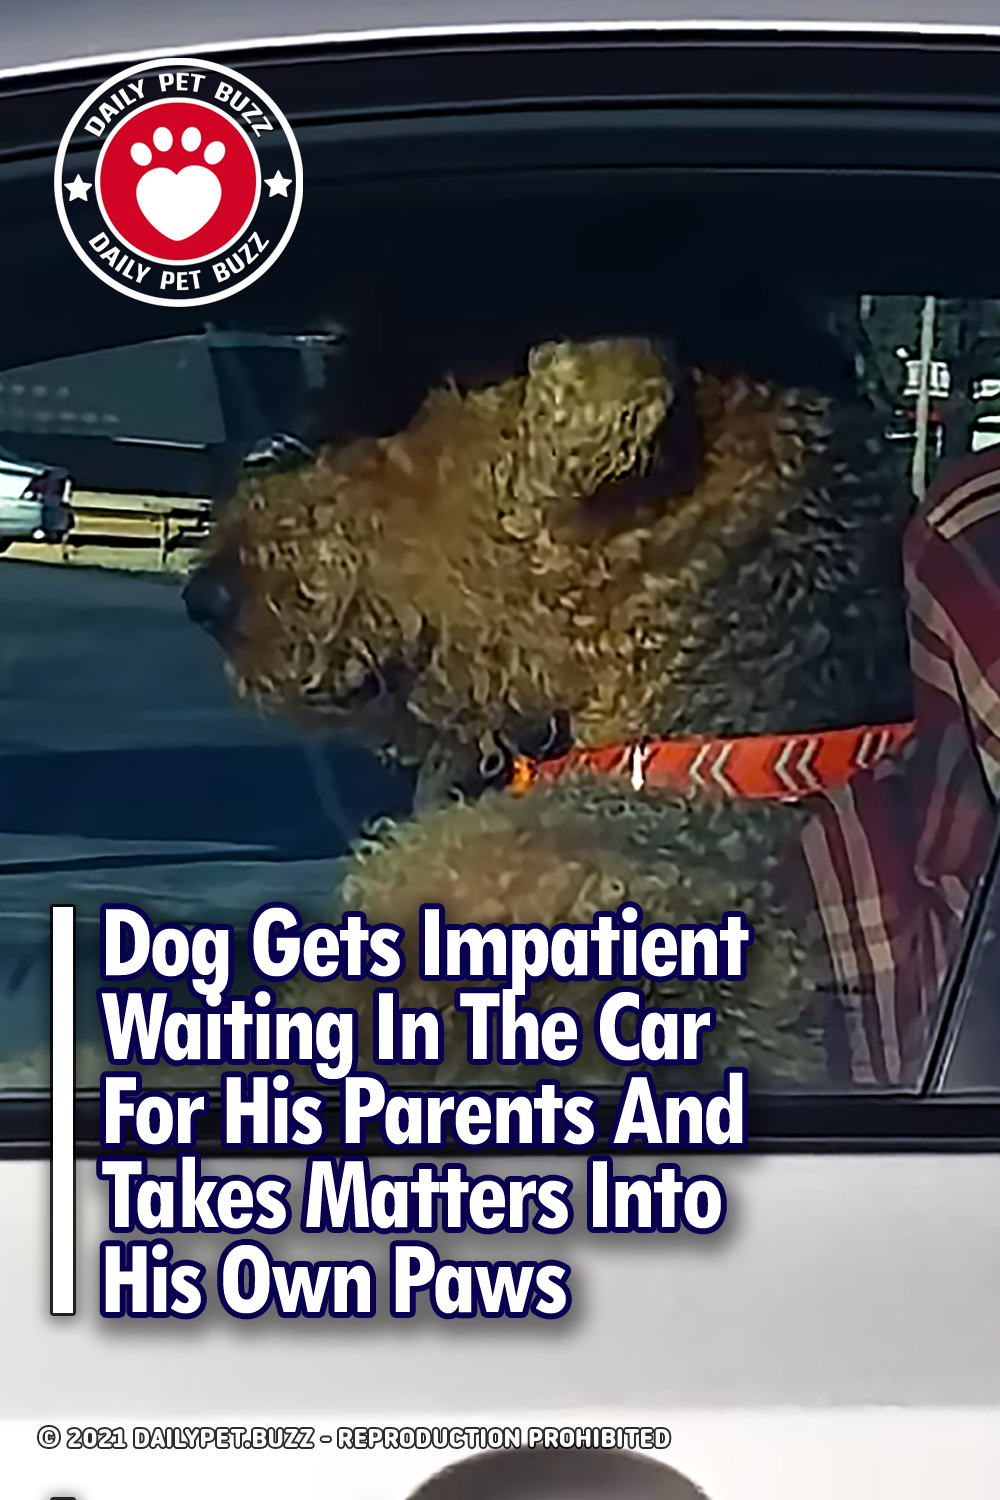 Dog Gets Impatient Waiting In The Car For His Parents And Takes Matters Into His Own Paws